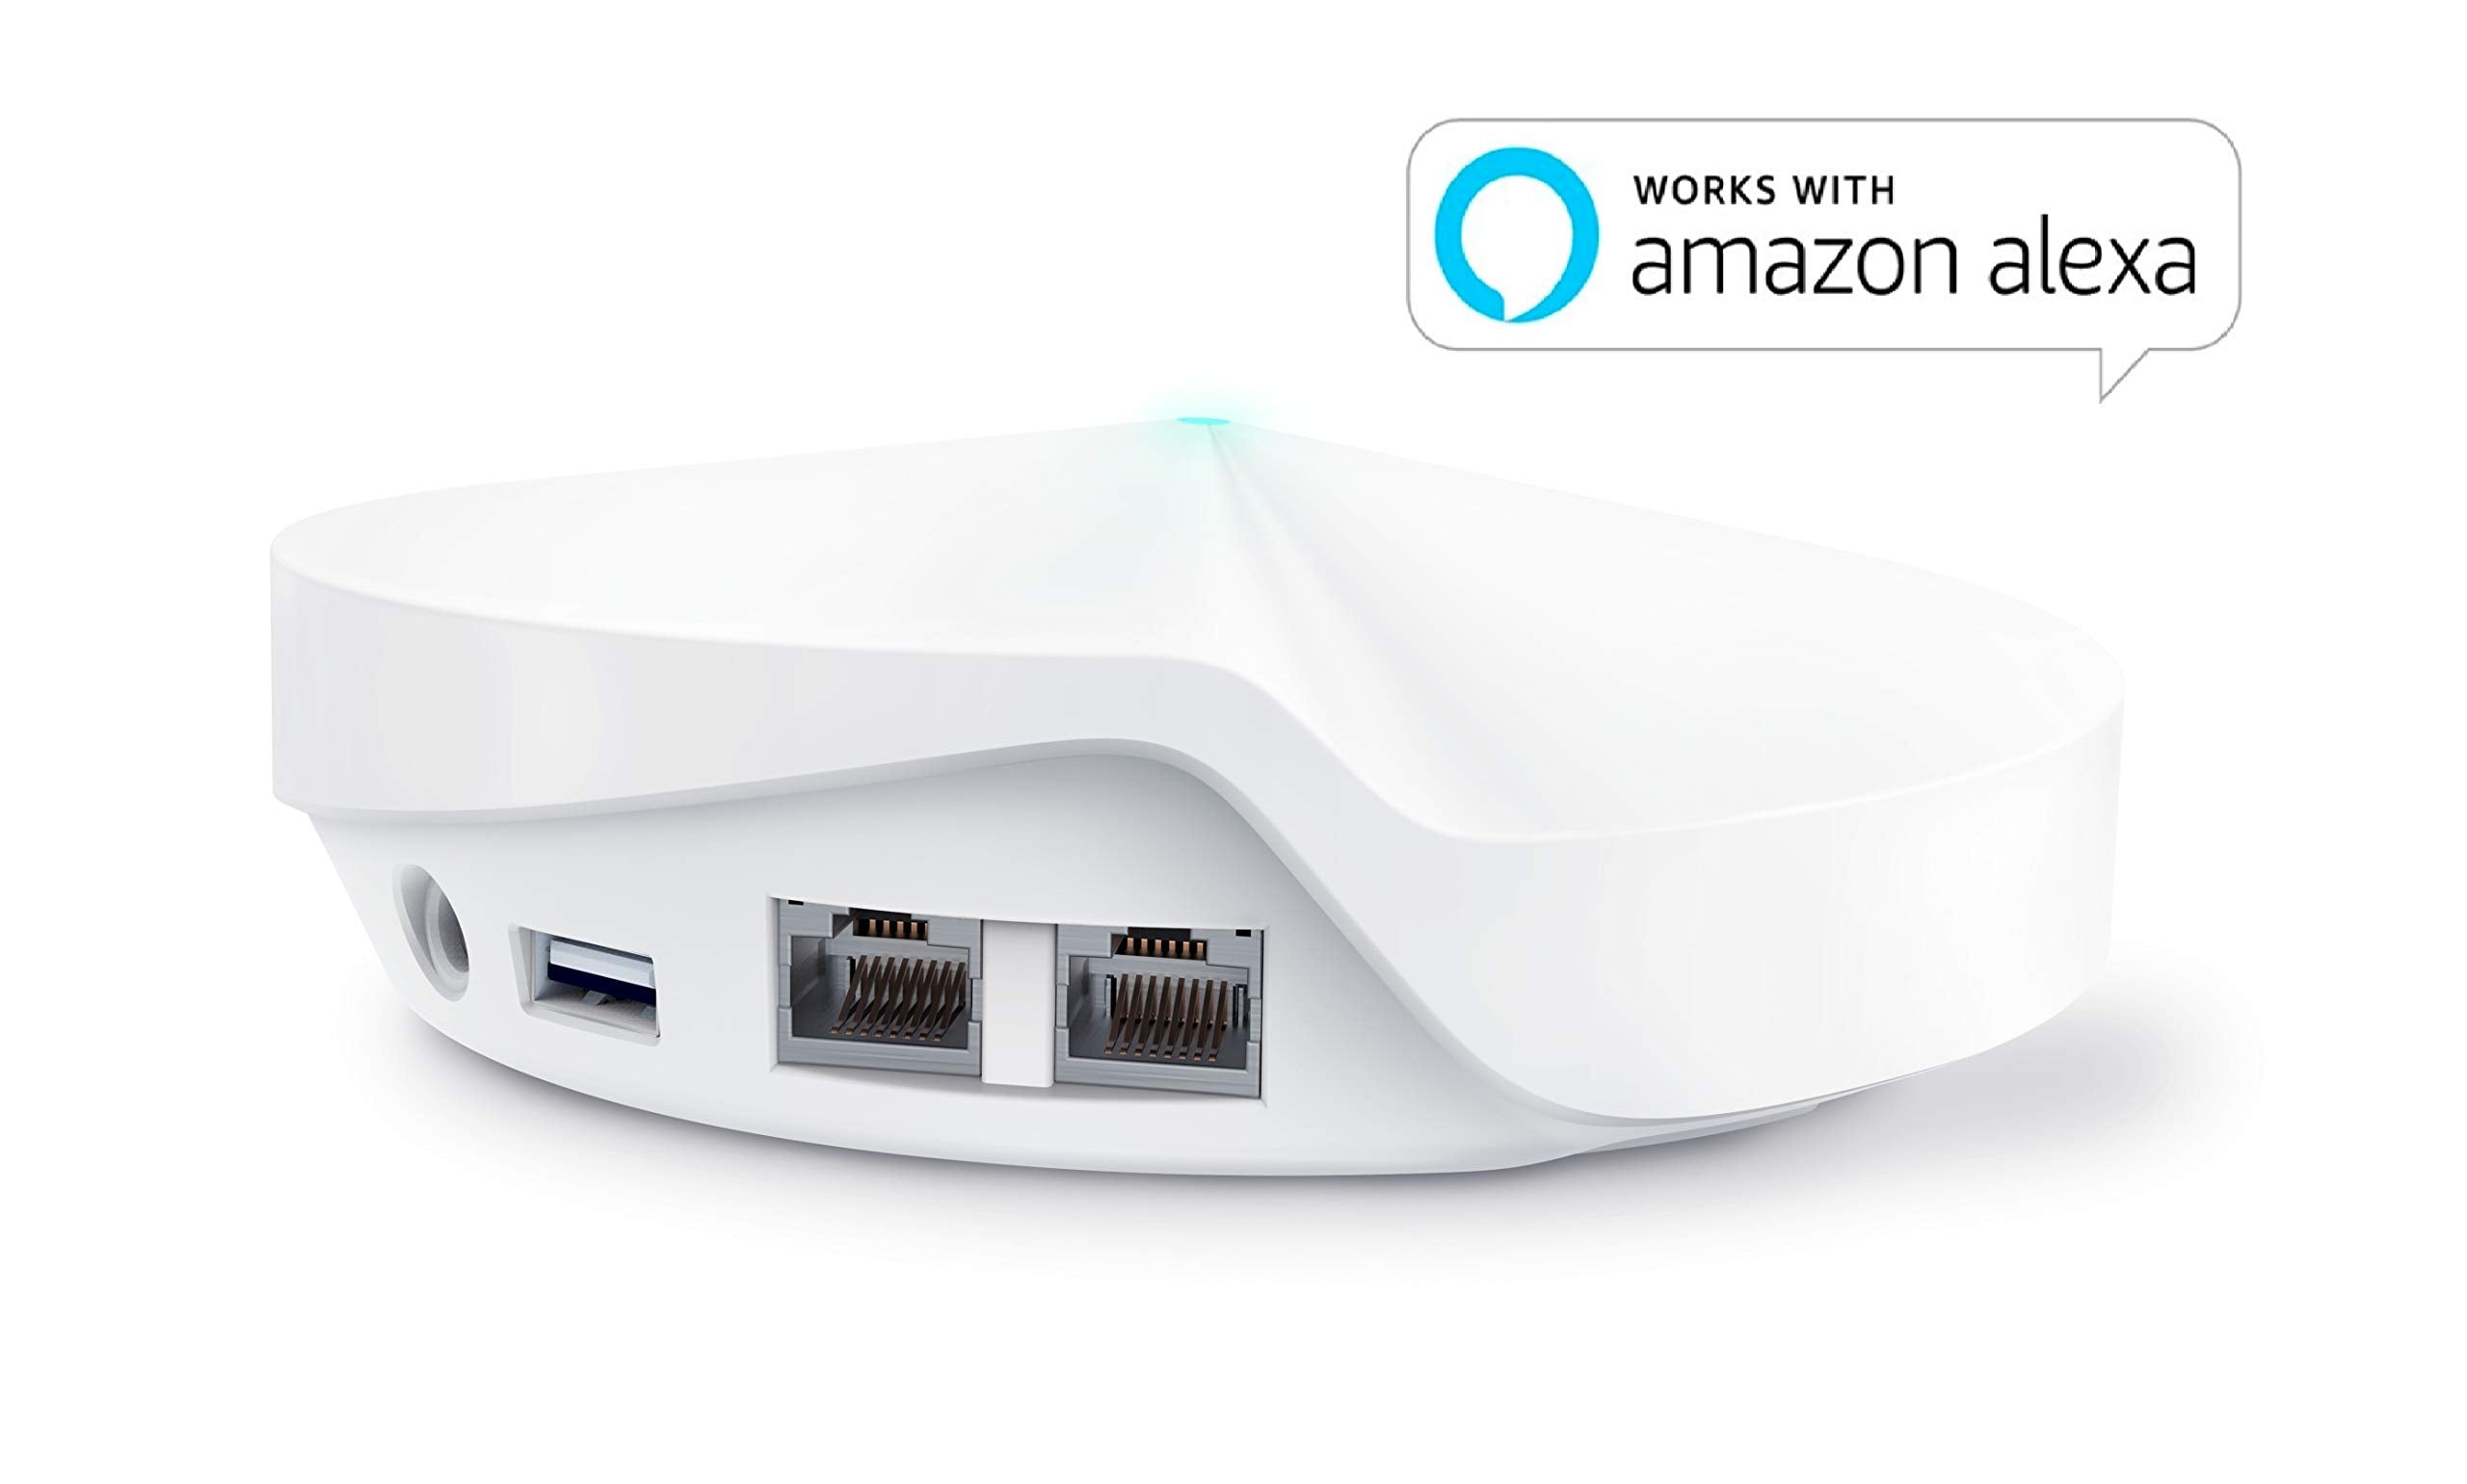 TP-Link Smart Hub & Whole Home WiFi Mesh System